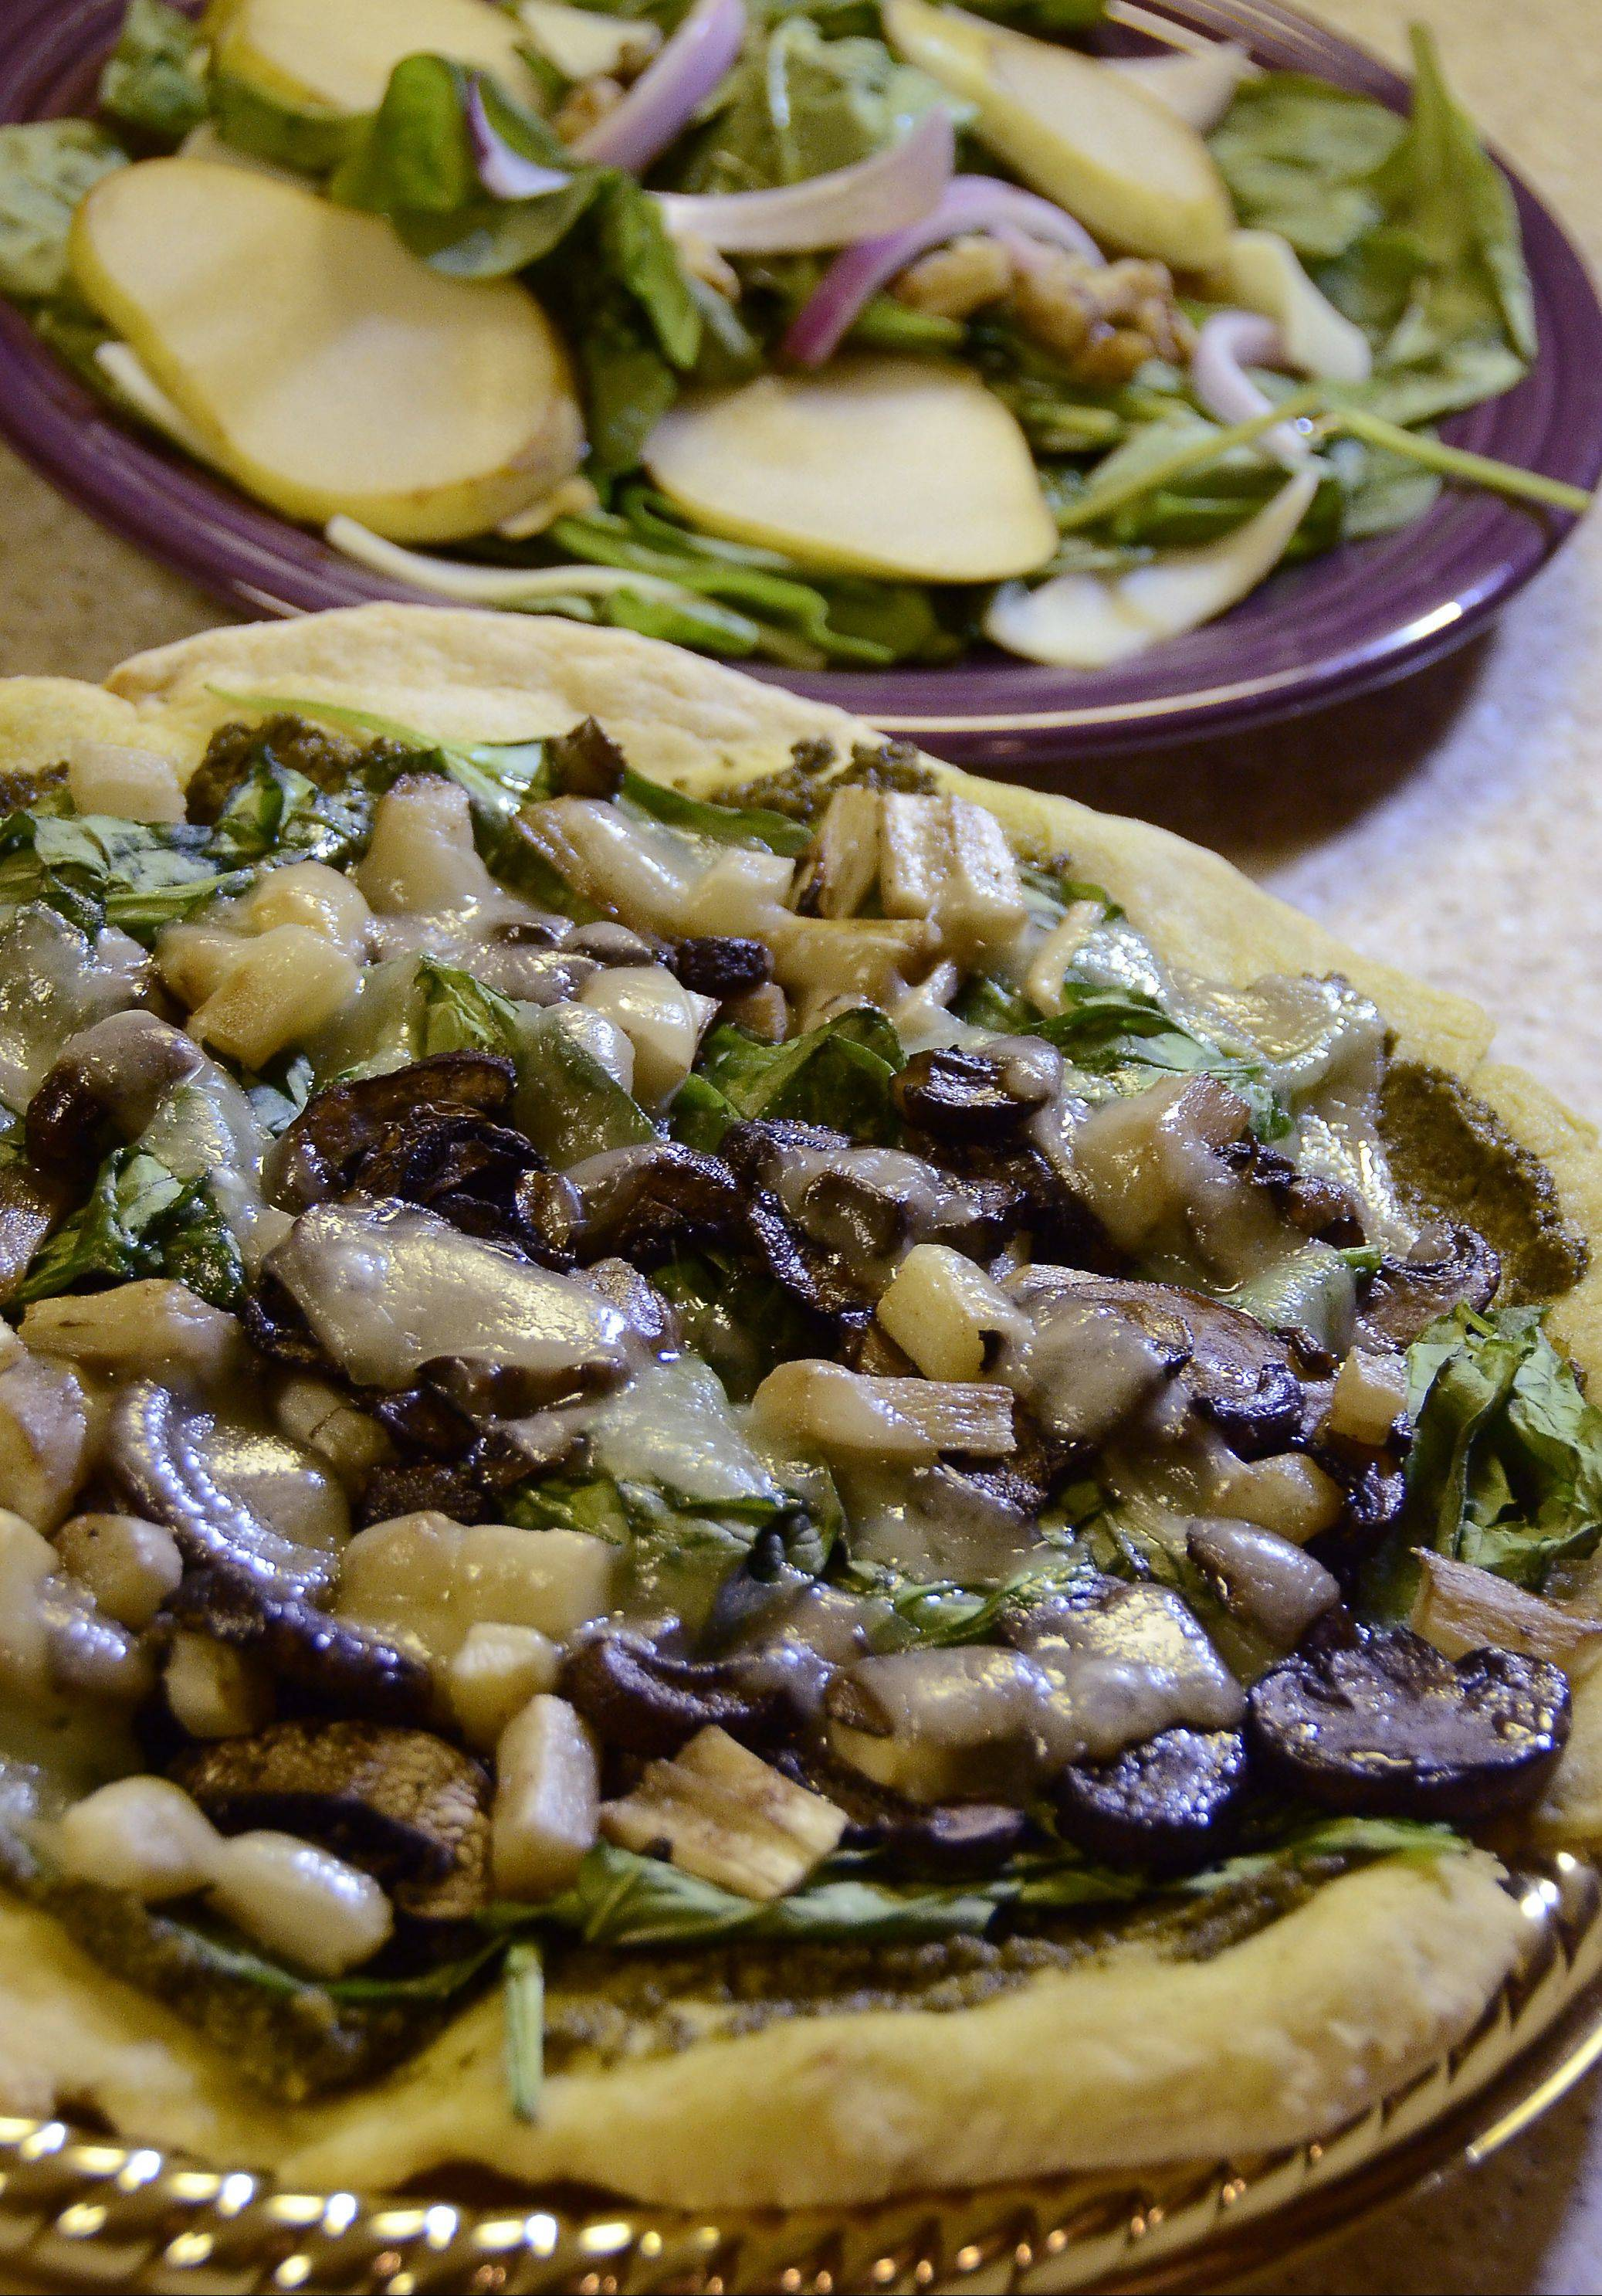 Savory Salsify and Spinach Pizza with Provolone and Pear Salad